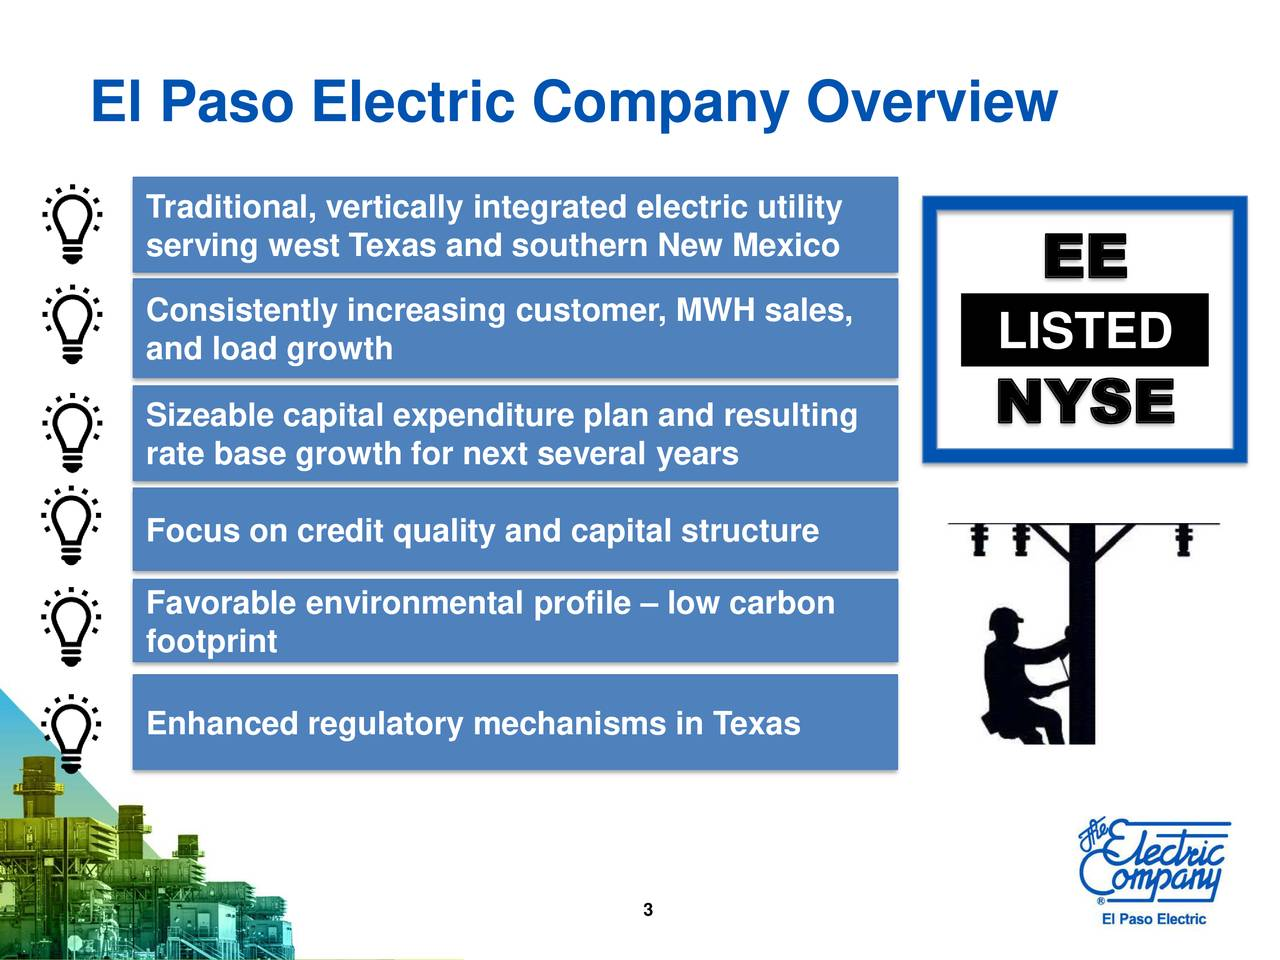 El Paso Electric Company Overview